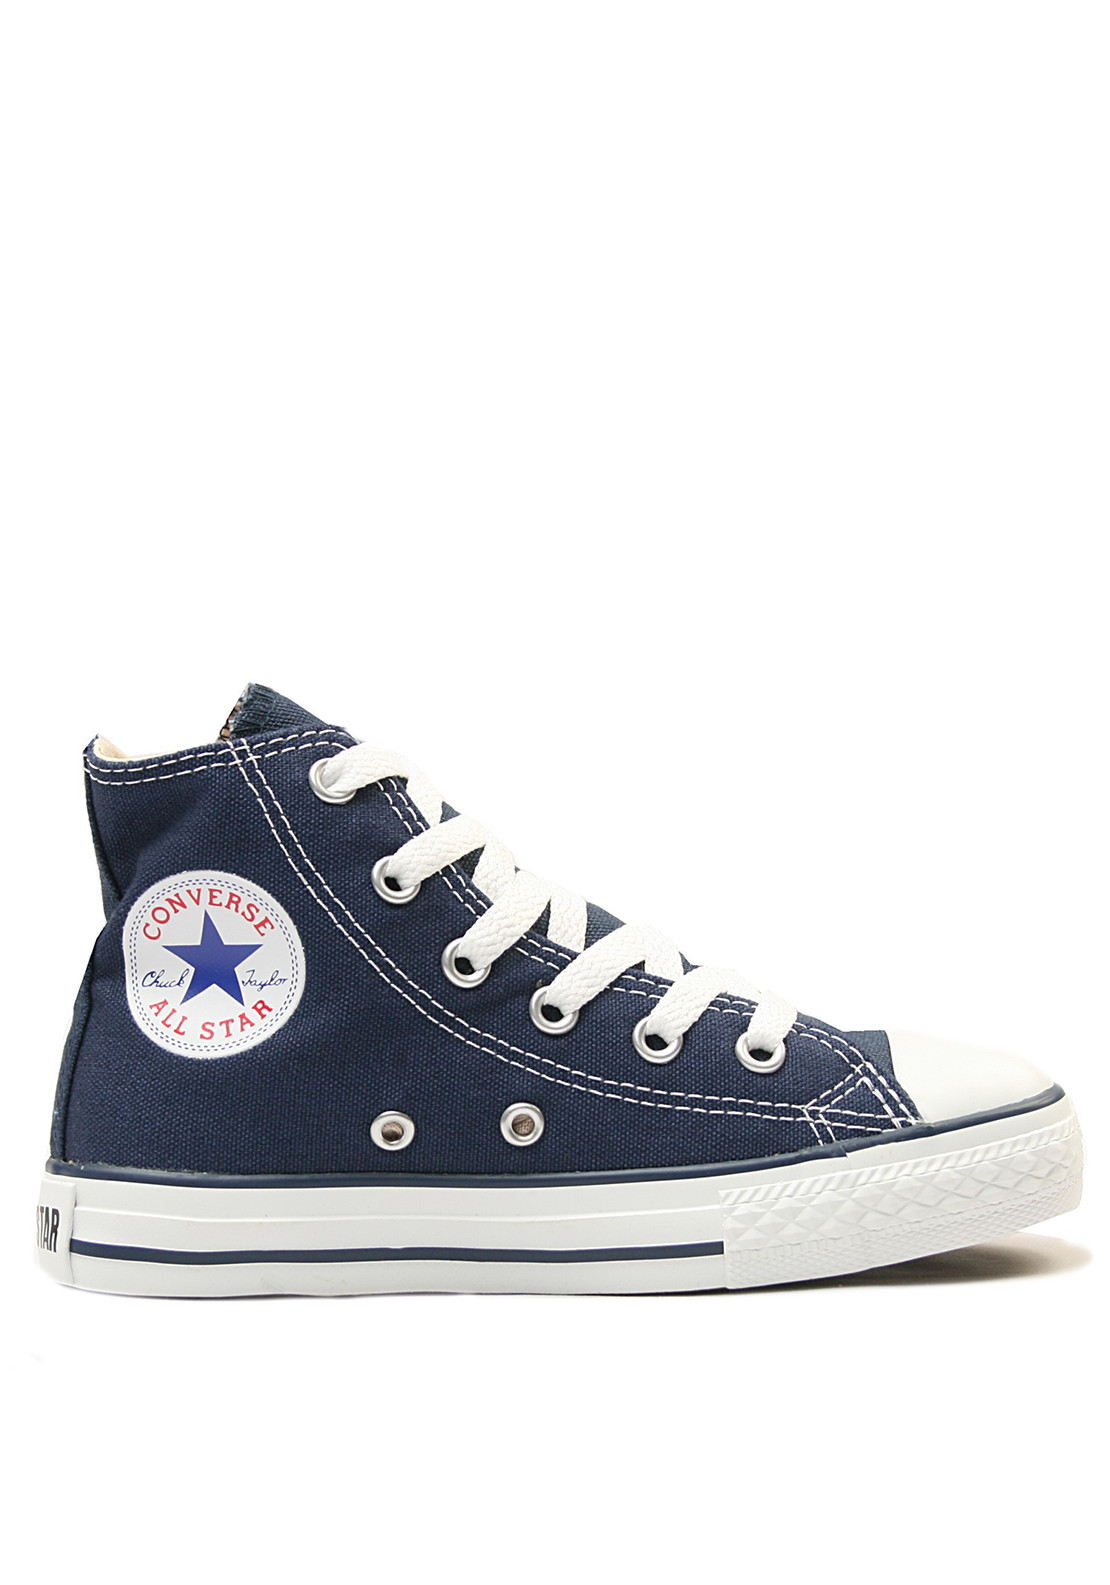 Converse All-Star Hi-Tops, Navy